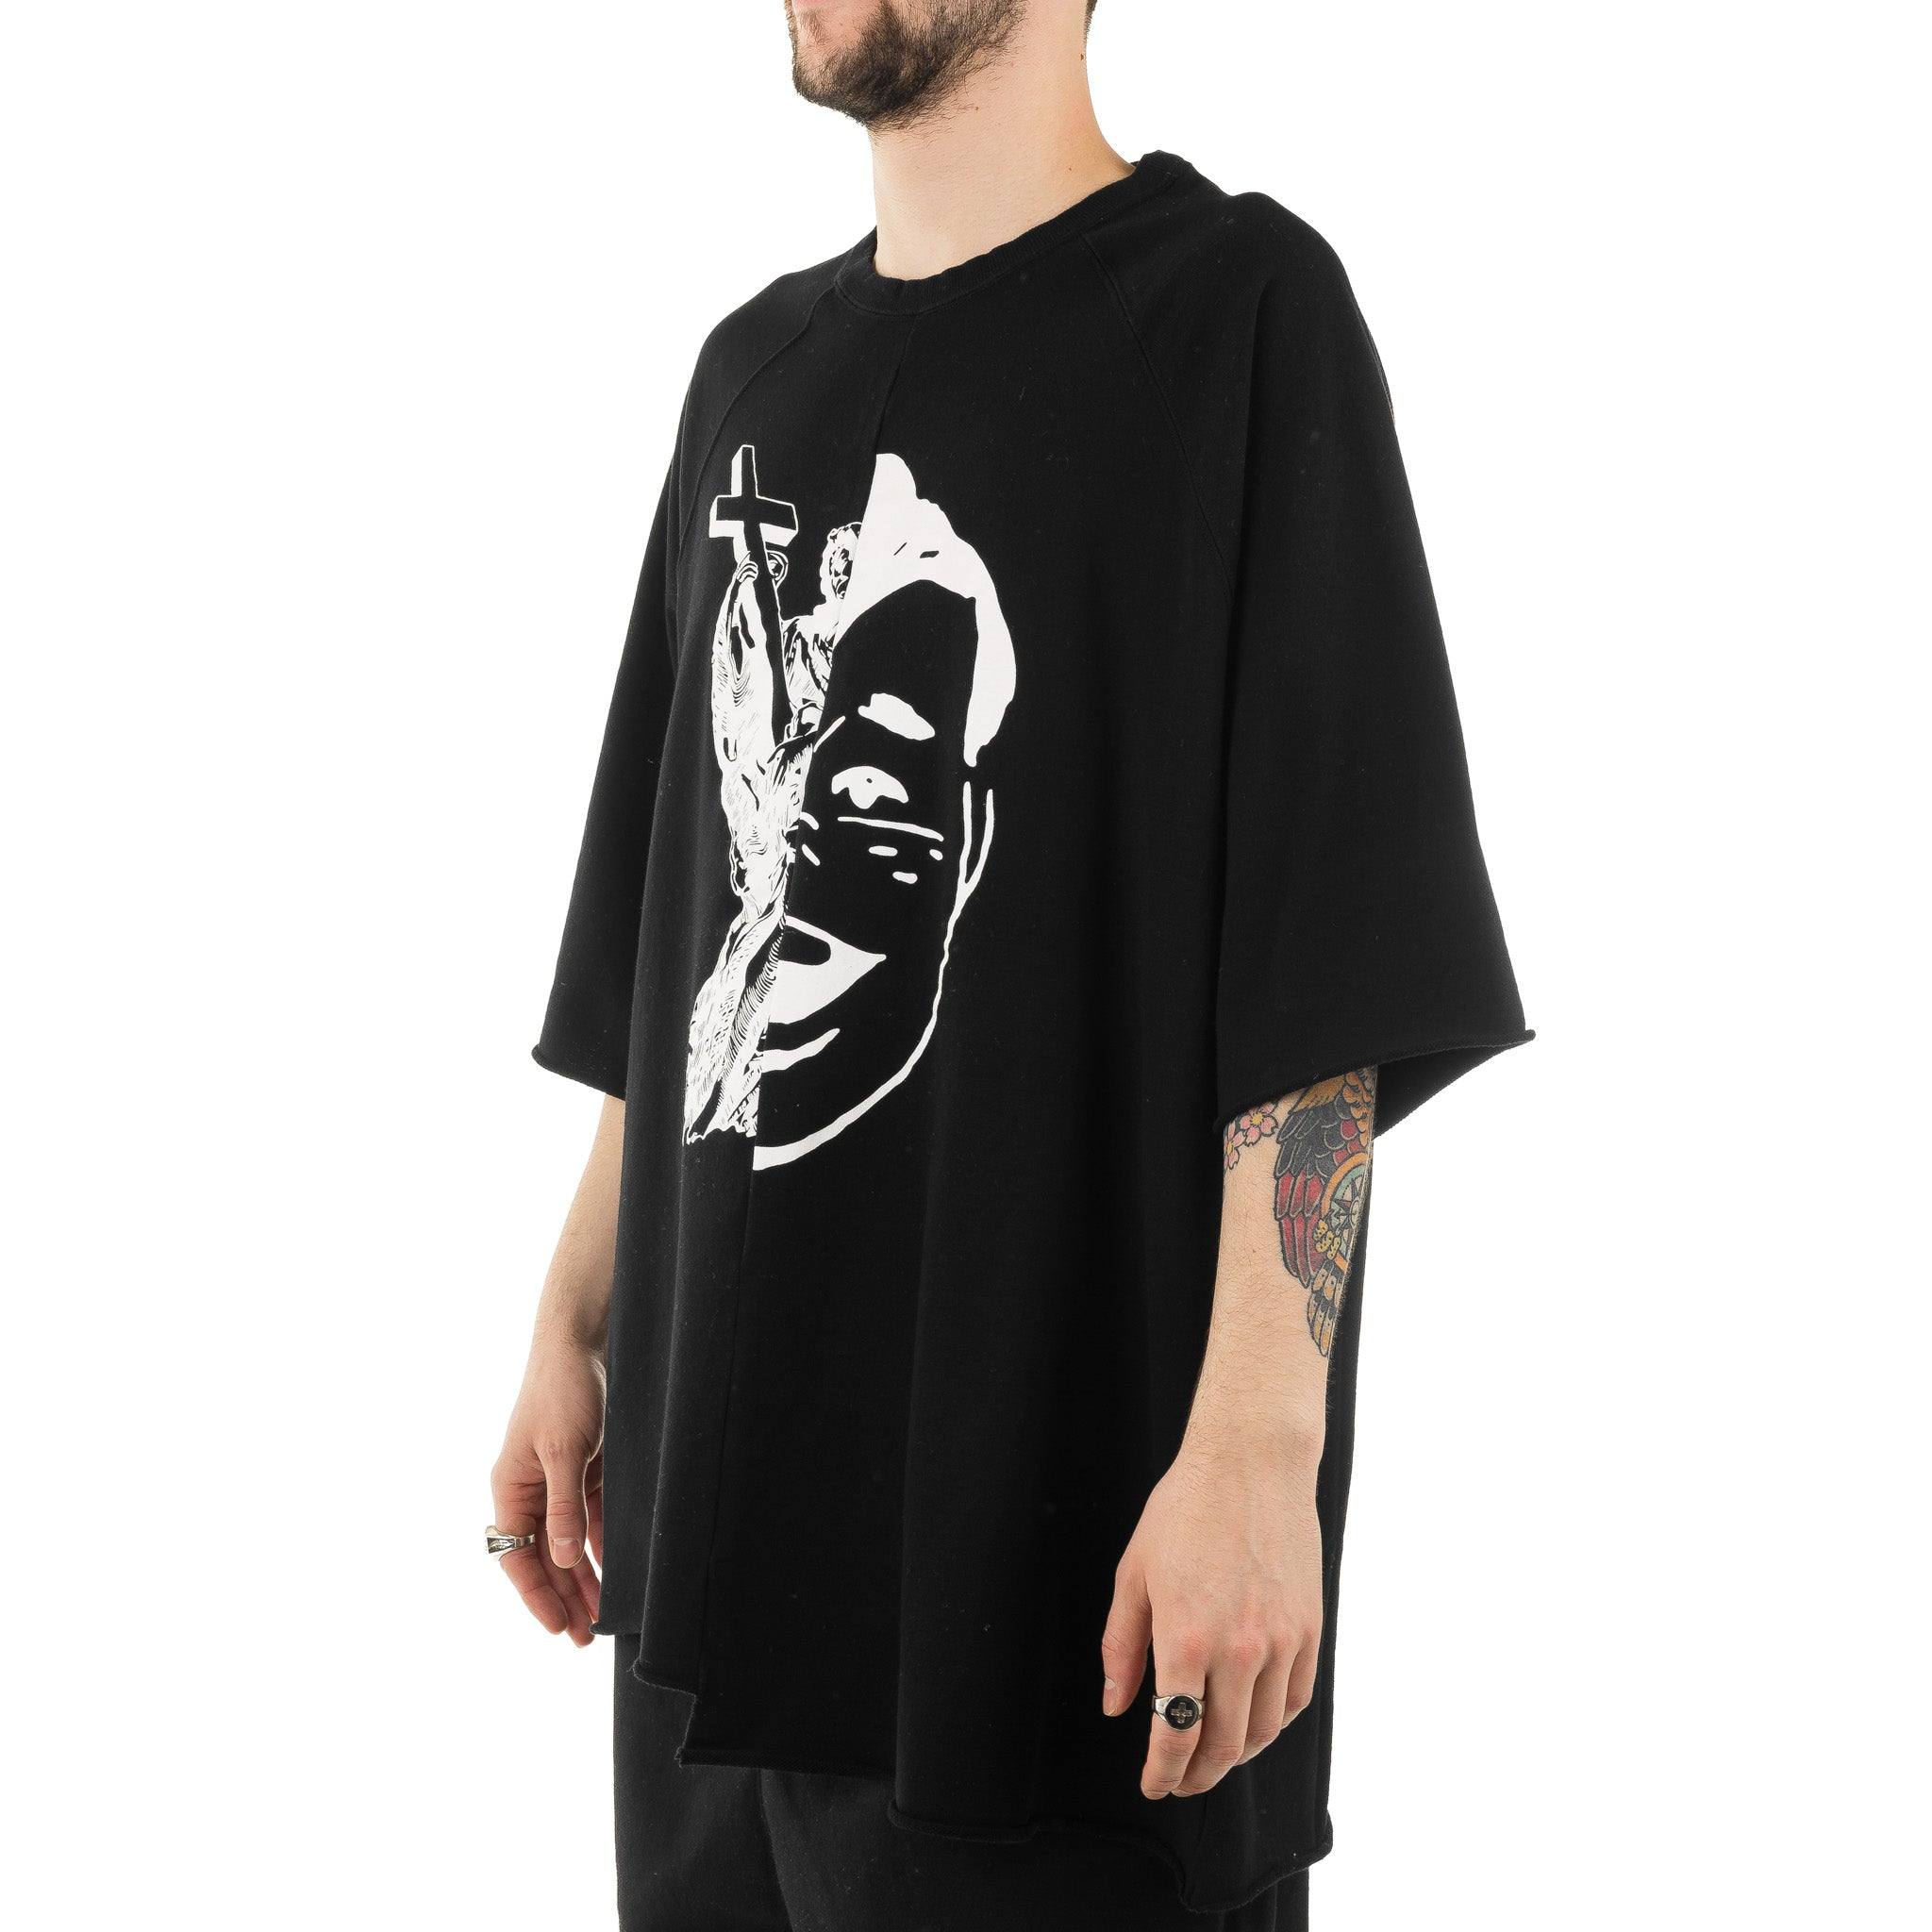 JohnUndercover Tee JUW4805-1 Black